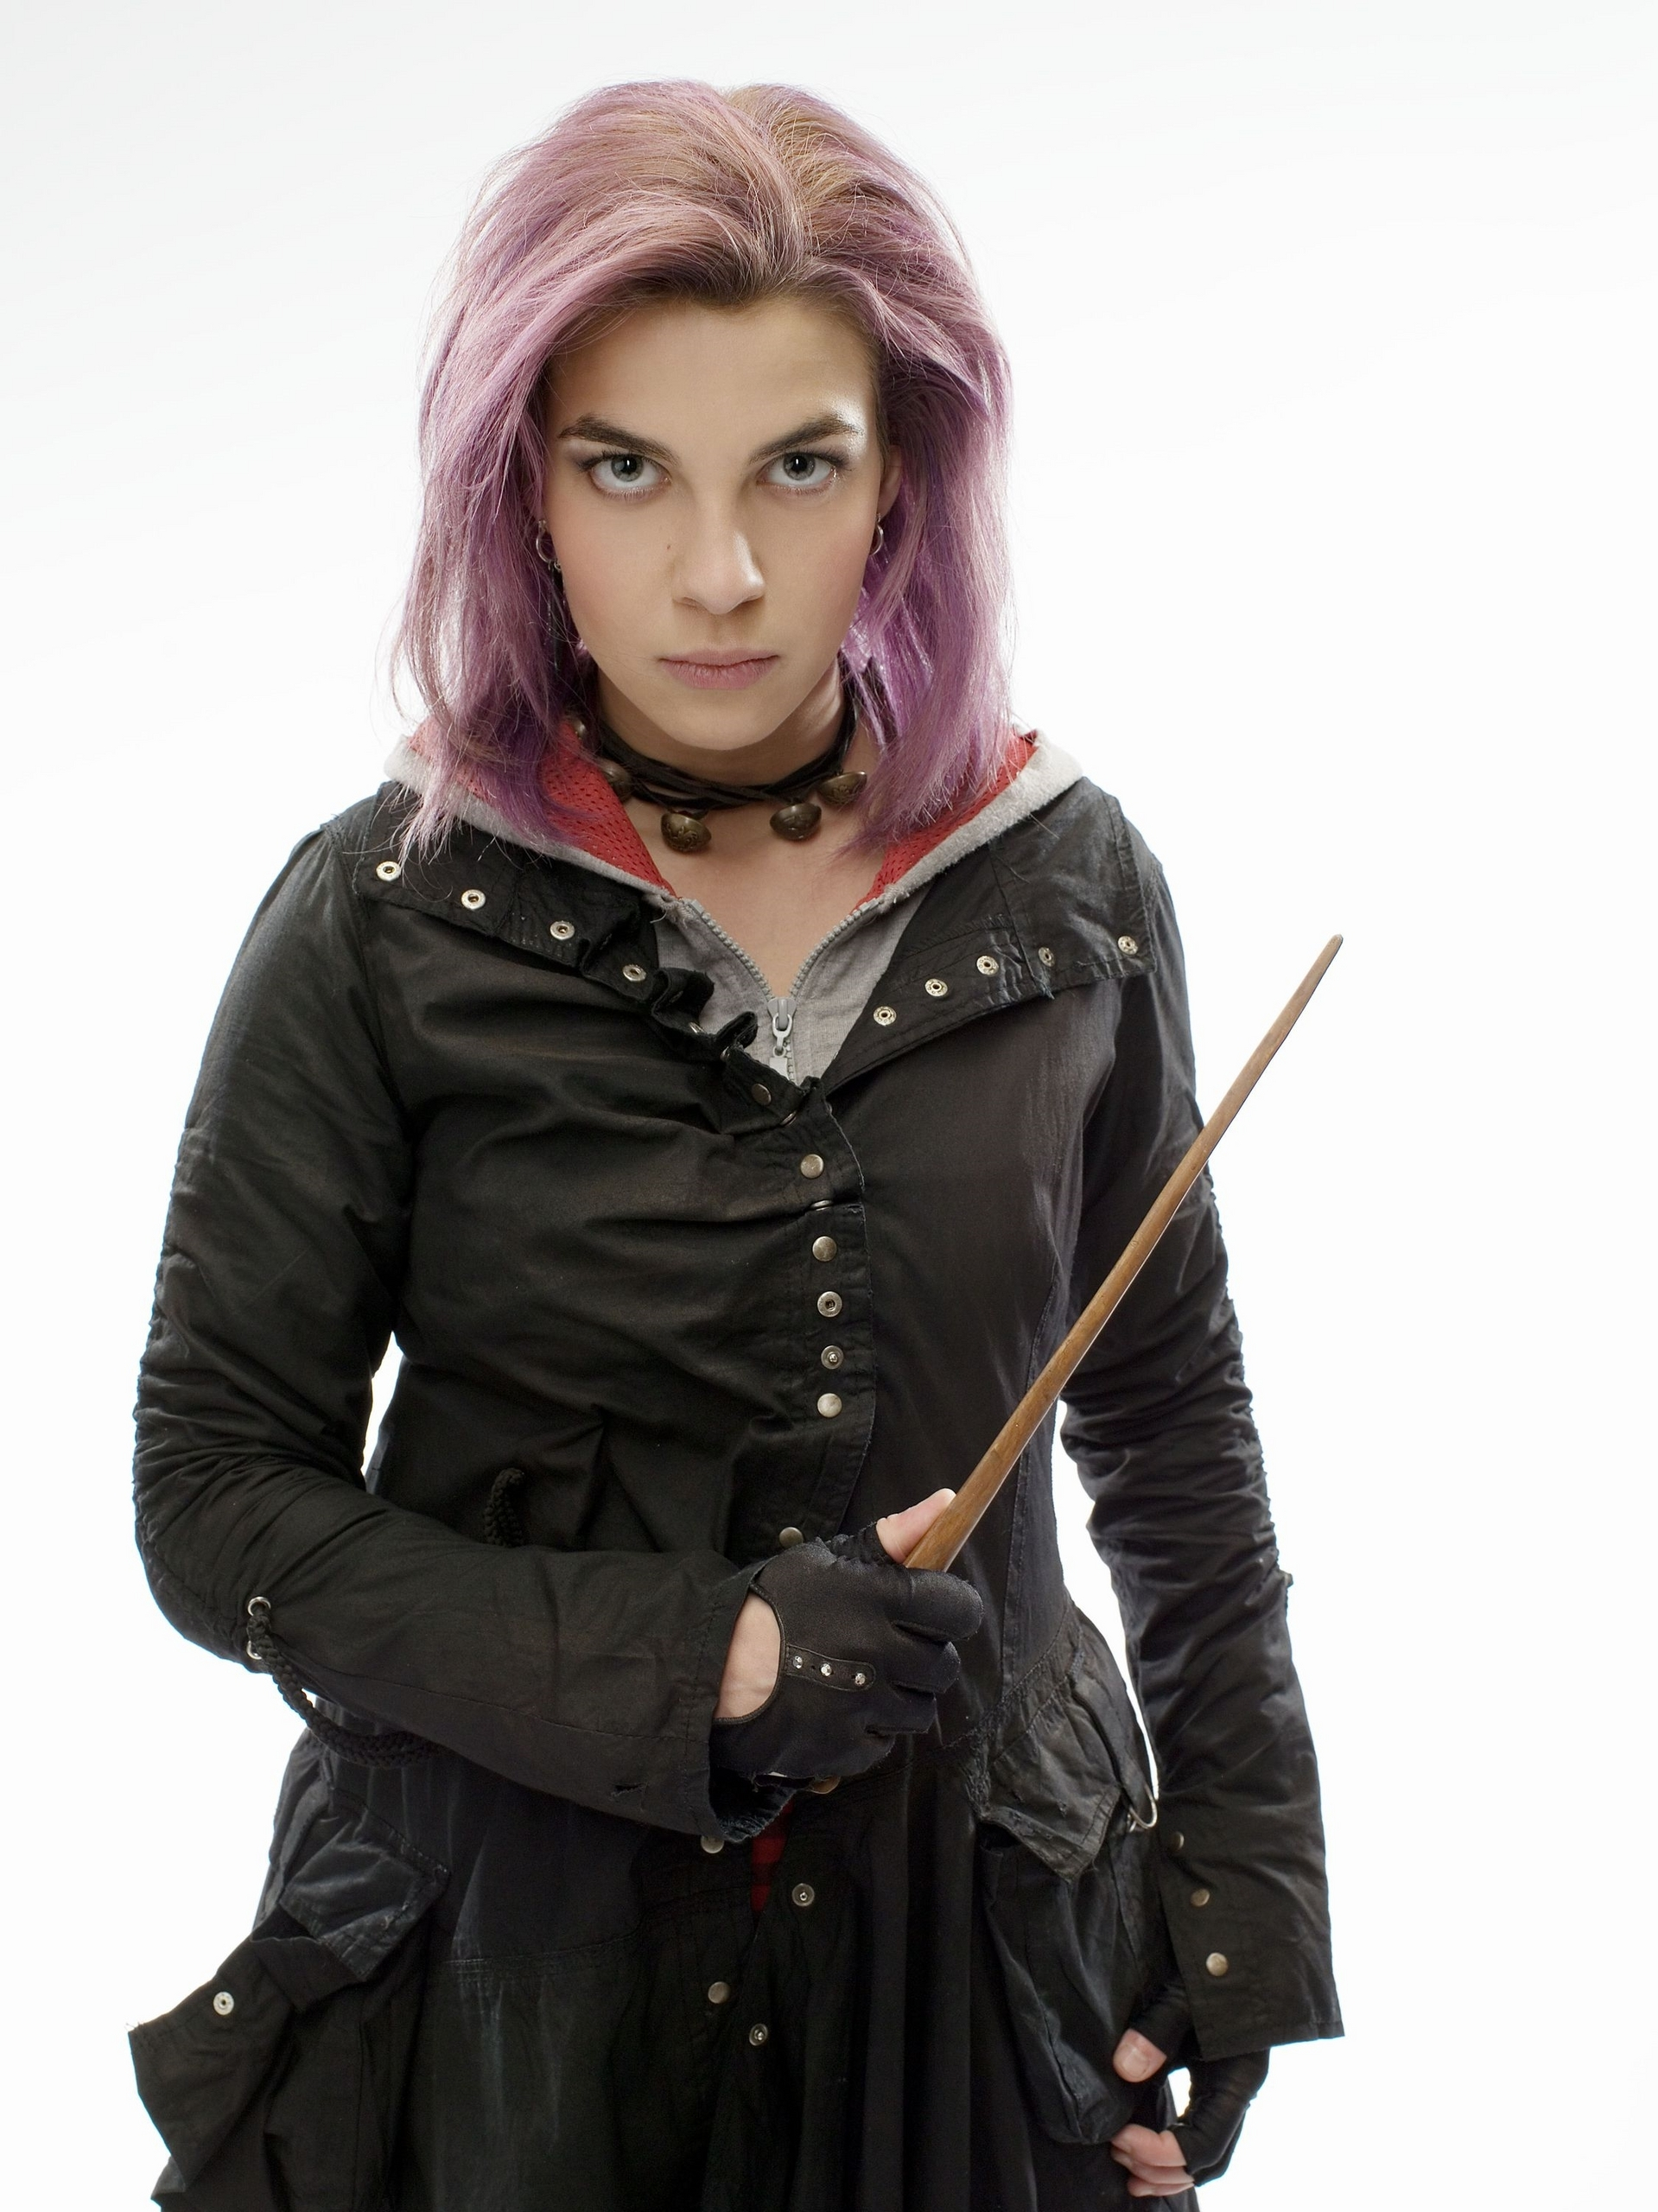 http://images.wikia.com/harrypotter/images/2/27/Tonks1.jpg